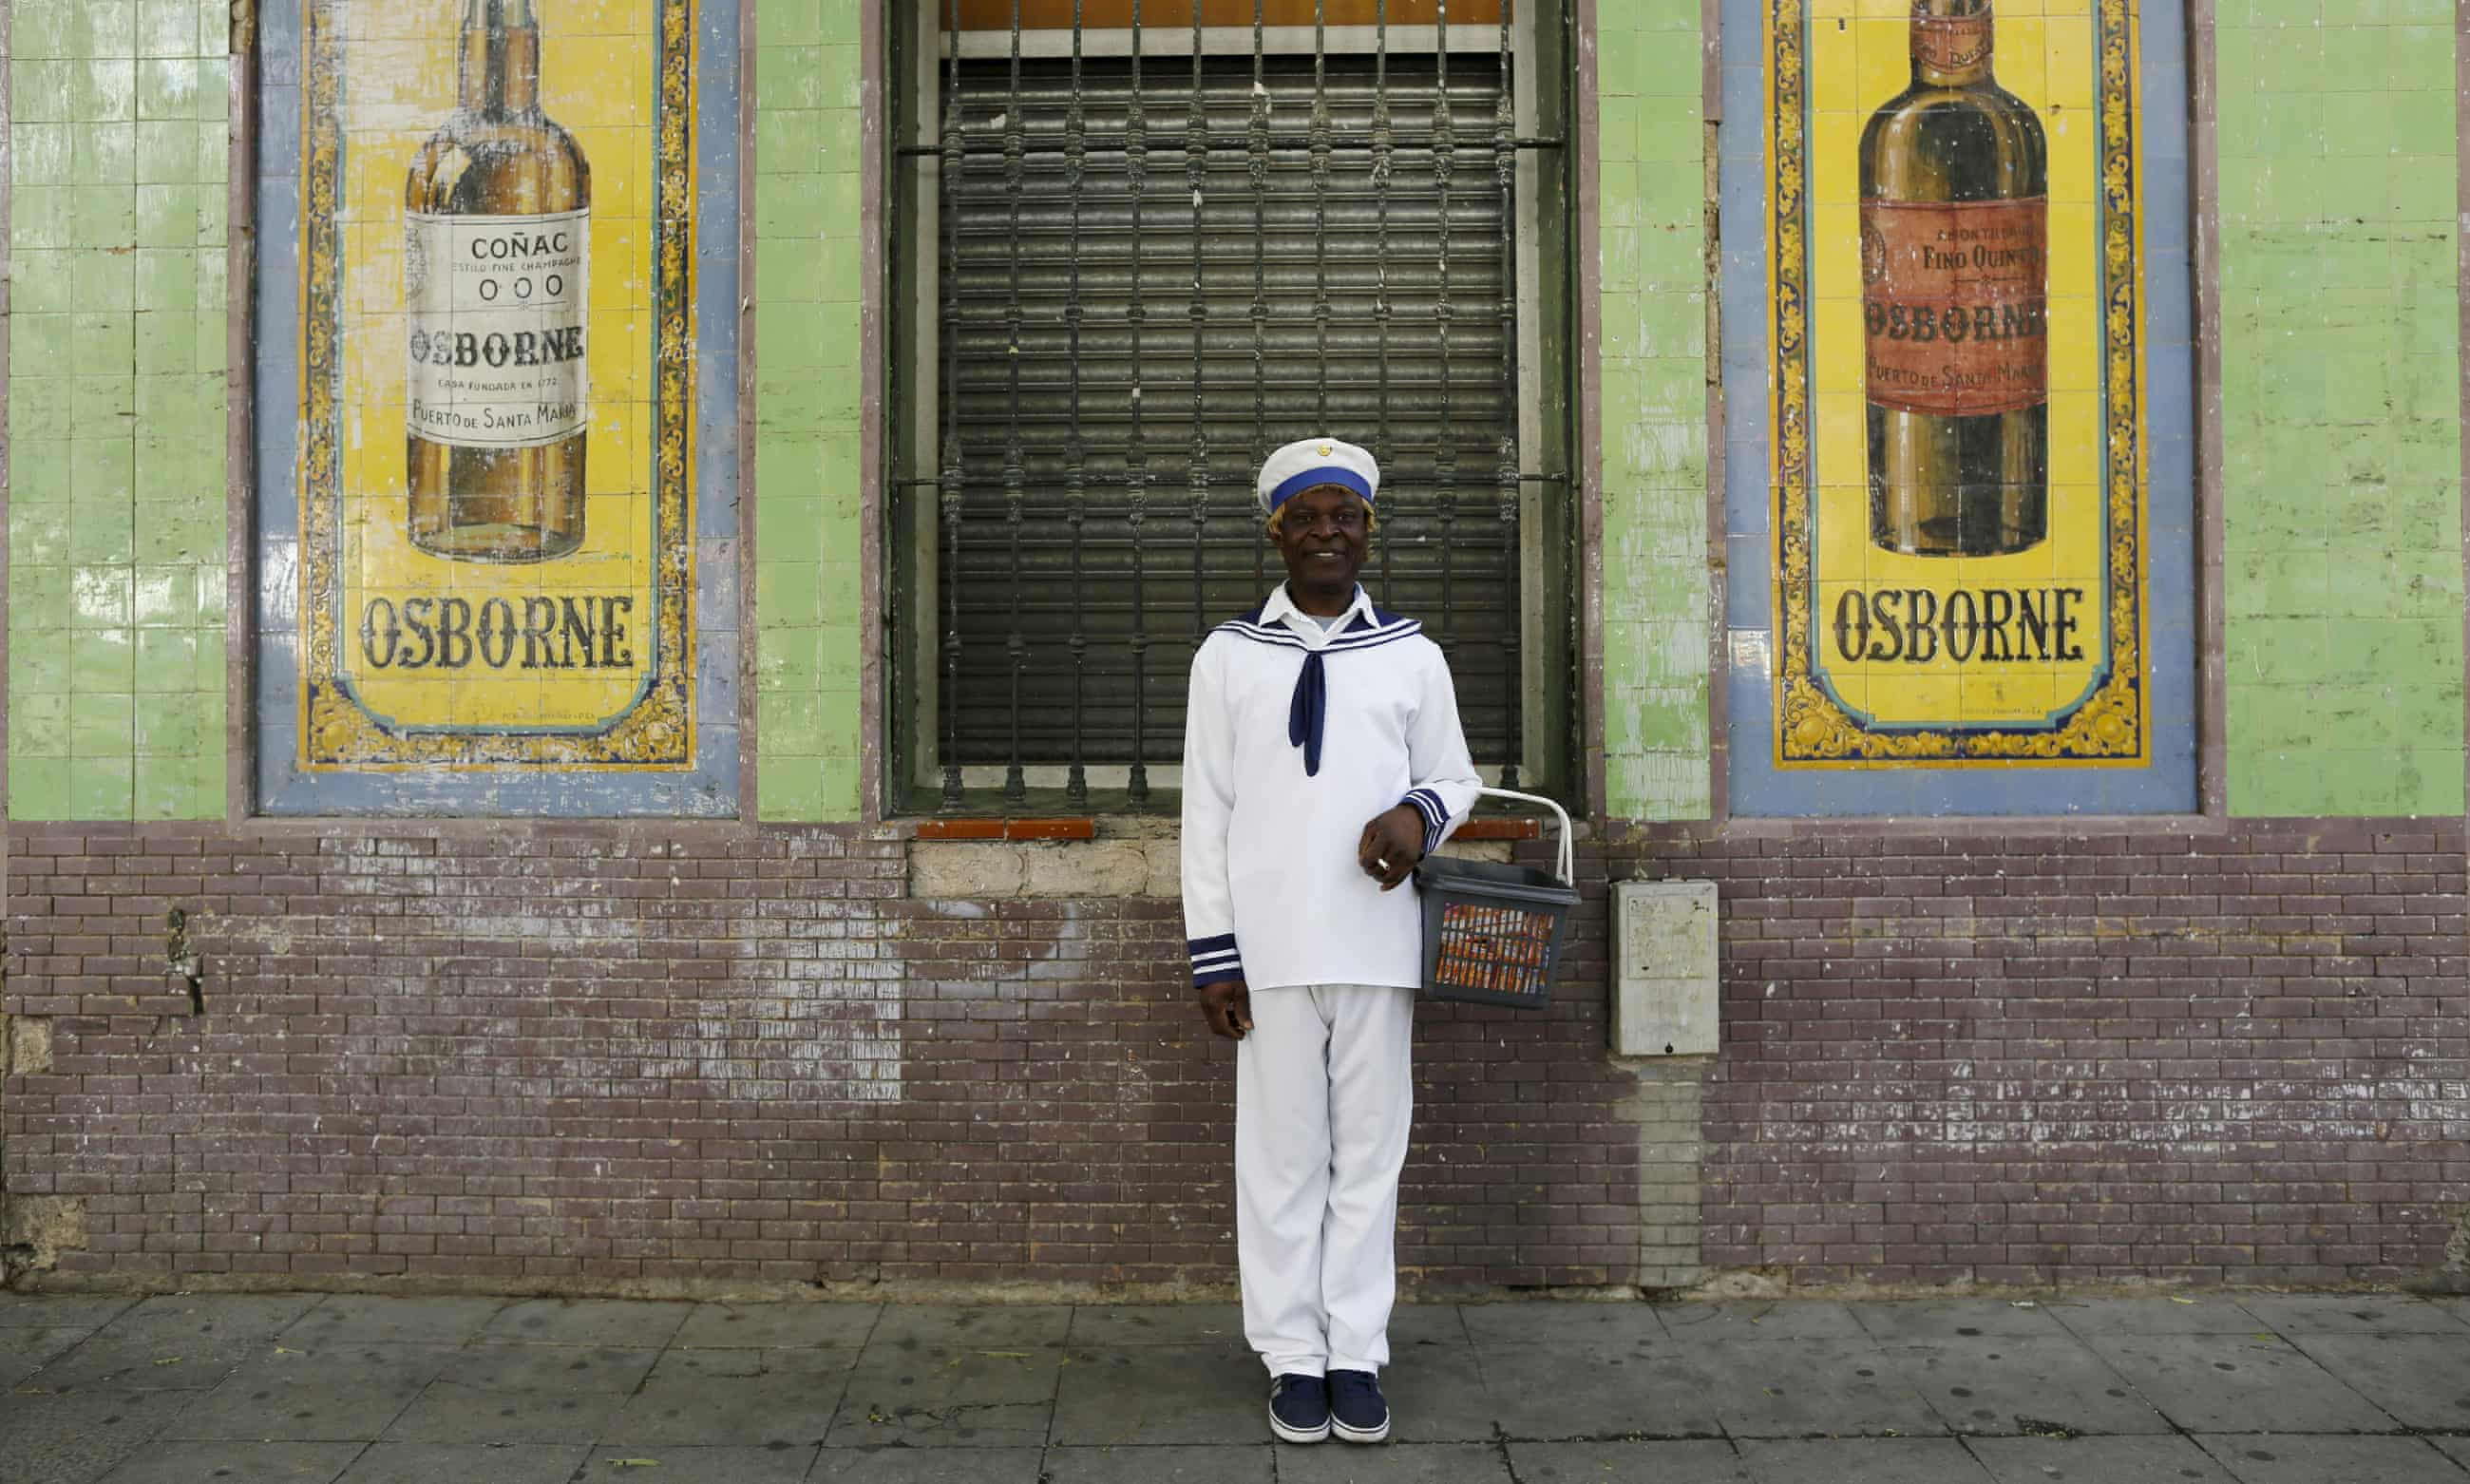 Portrait of a tissue seller in Spain - in pictures